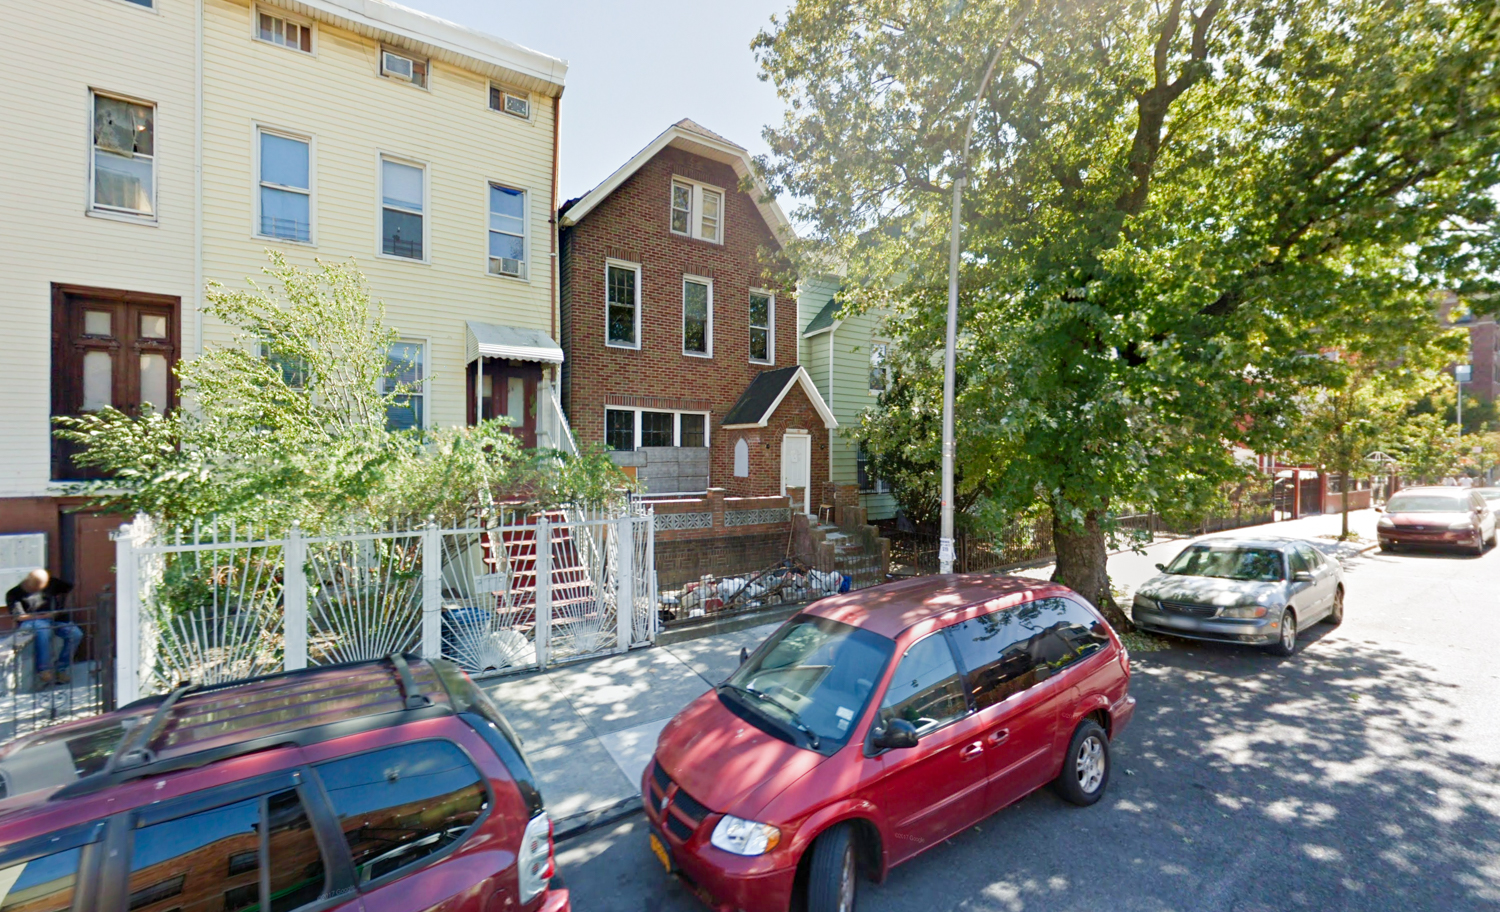 66 Linden Street, via Google Maps